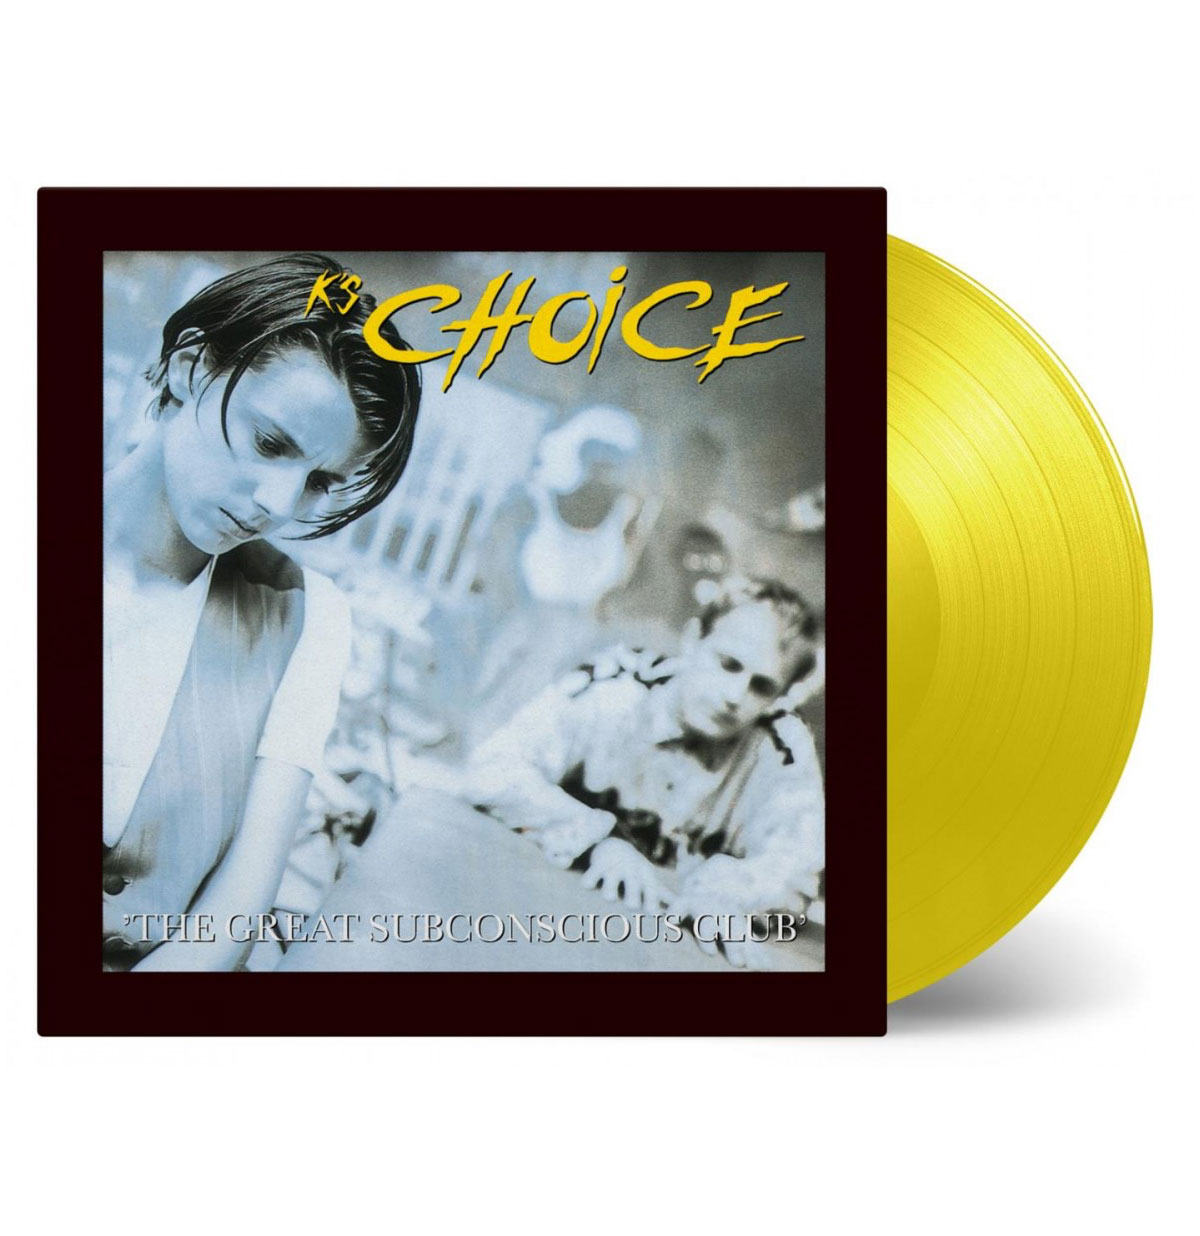 K's Choice - The Great Subconscious Club Limited Edition LP